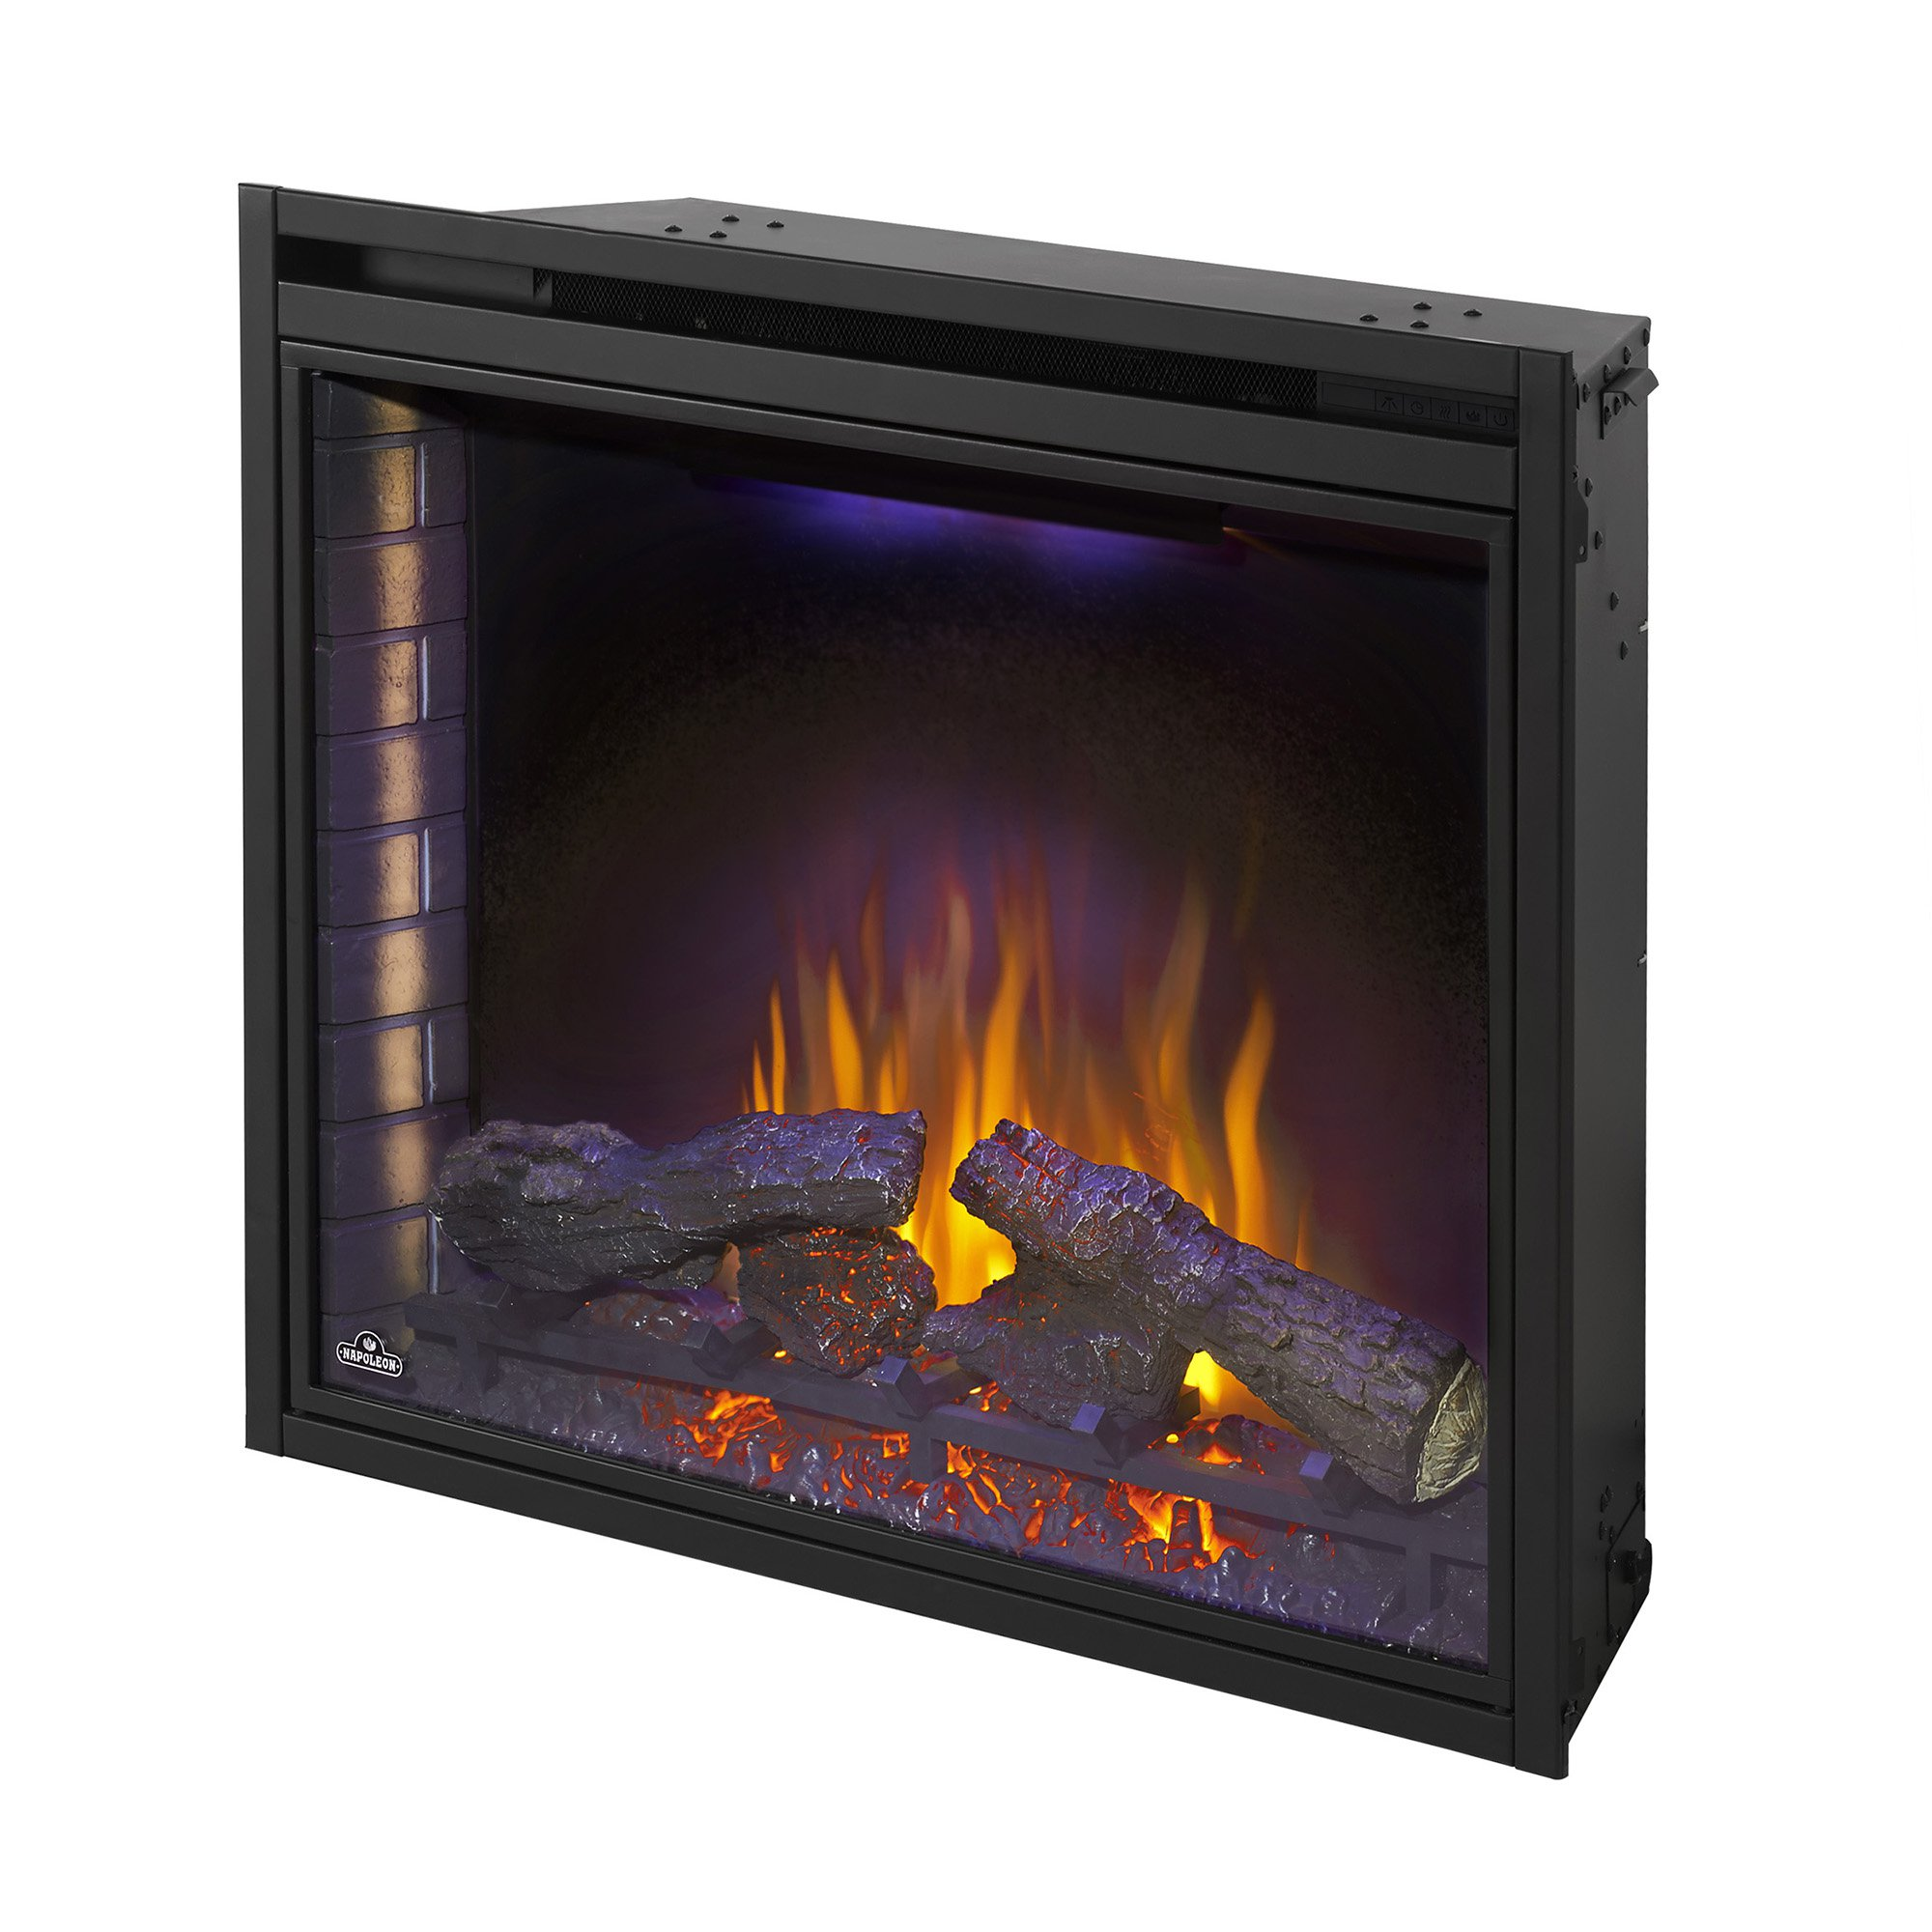 Napoleon Ascent 33 9000 BTU Home Living Room Built In Electric Fireplace Insert